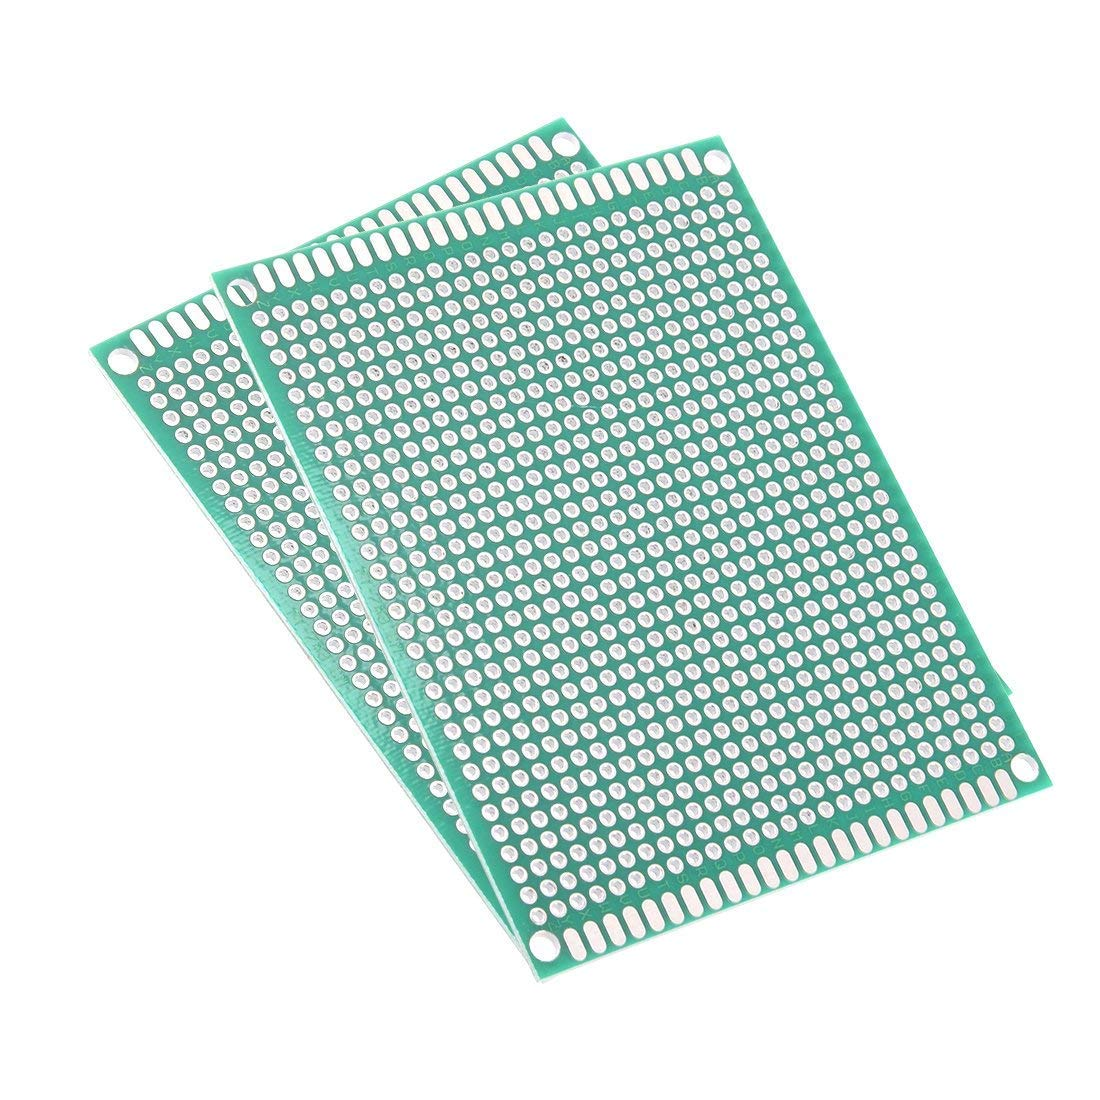 AUXcell 8x12cm Double Sided Universal Printed Circuit Board for DIY Soldering 10pcs